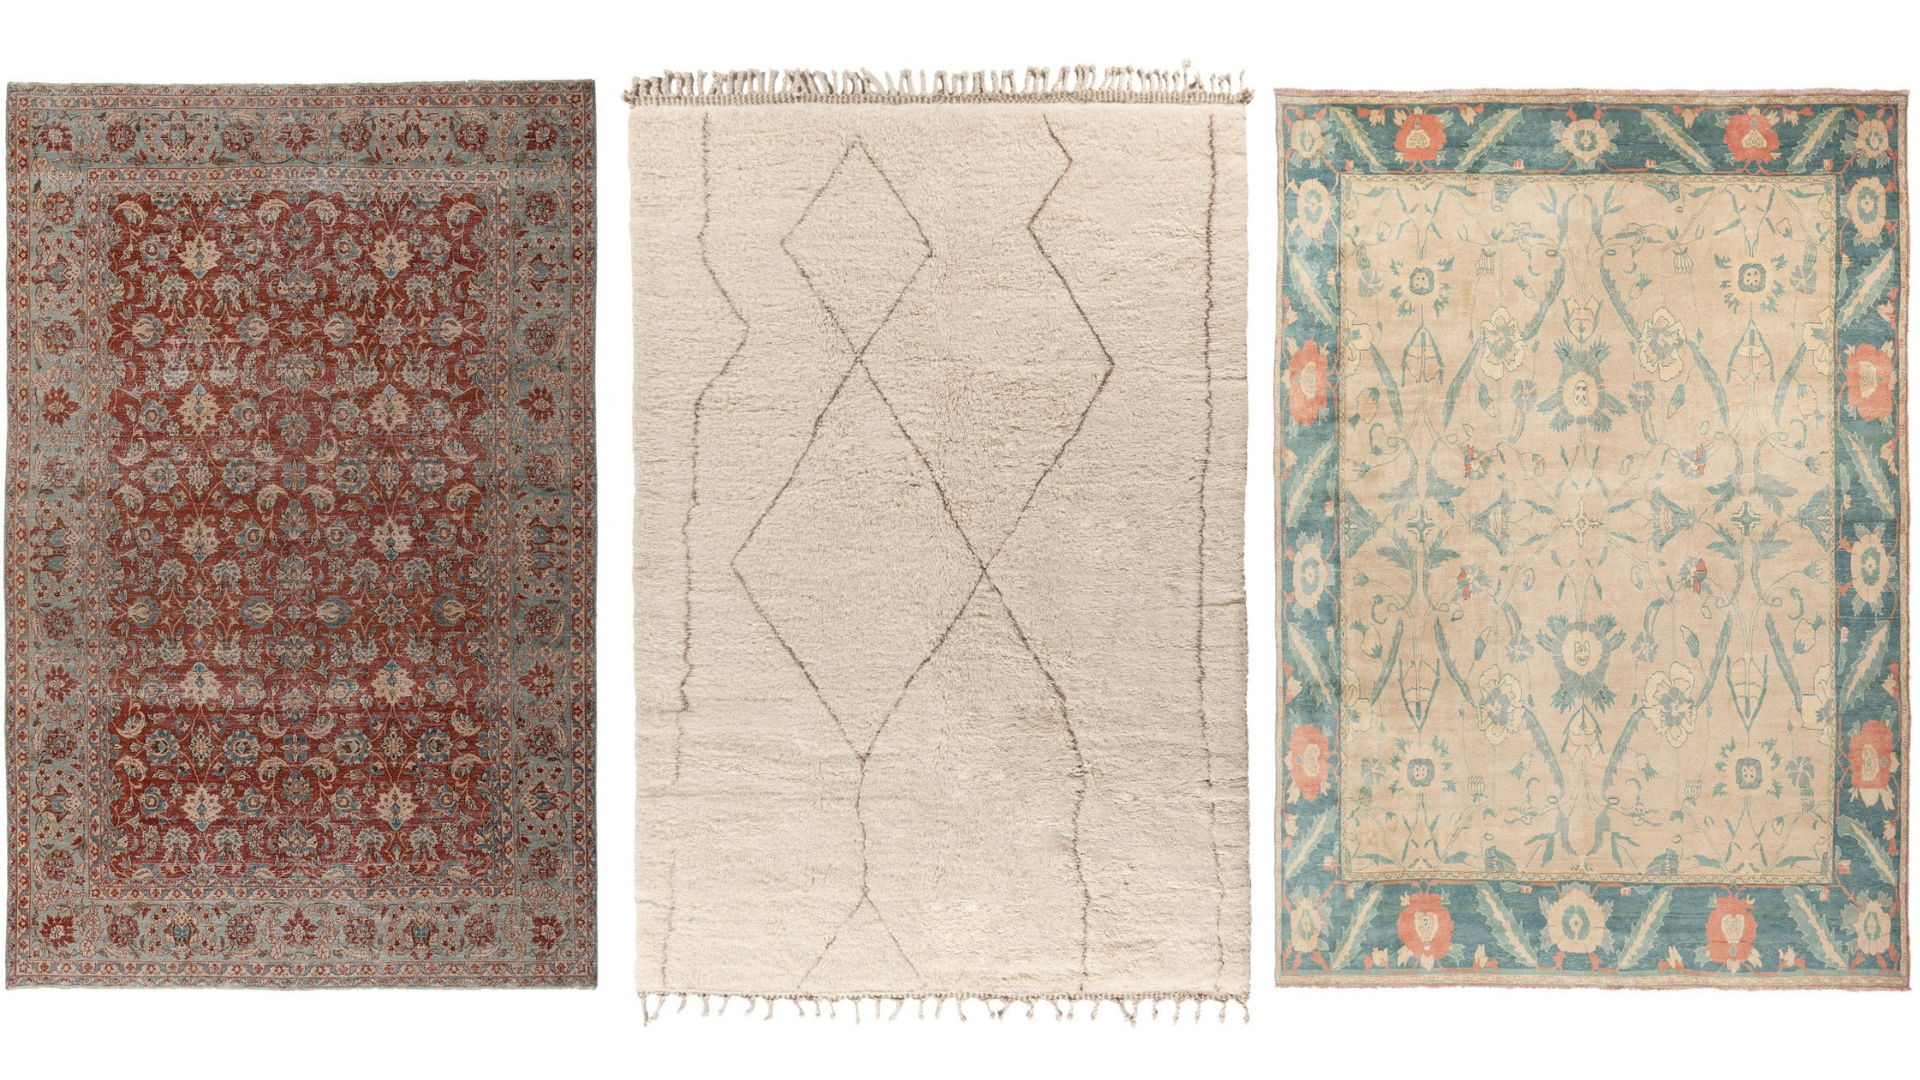 persian rugs, oriental rugs, home decor, home accessories, interior decor, interior design tips, tips and tricks, design guide, london rugs, uk rugs, rug collections